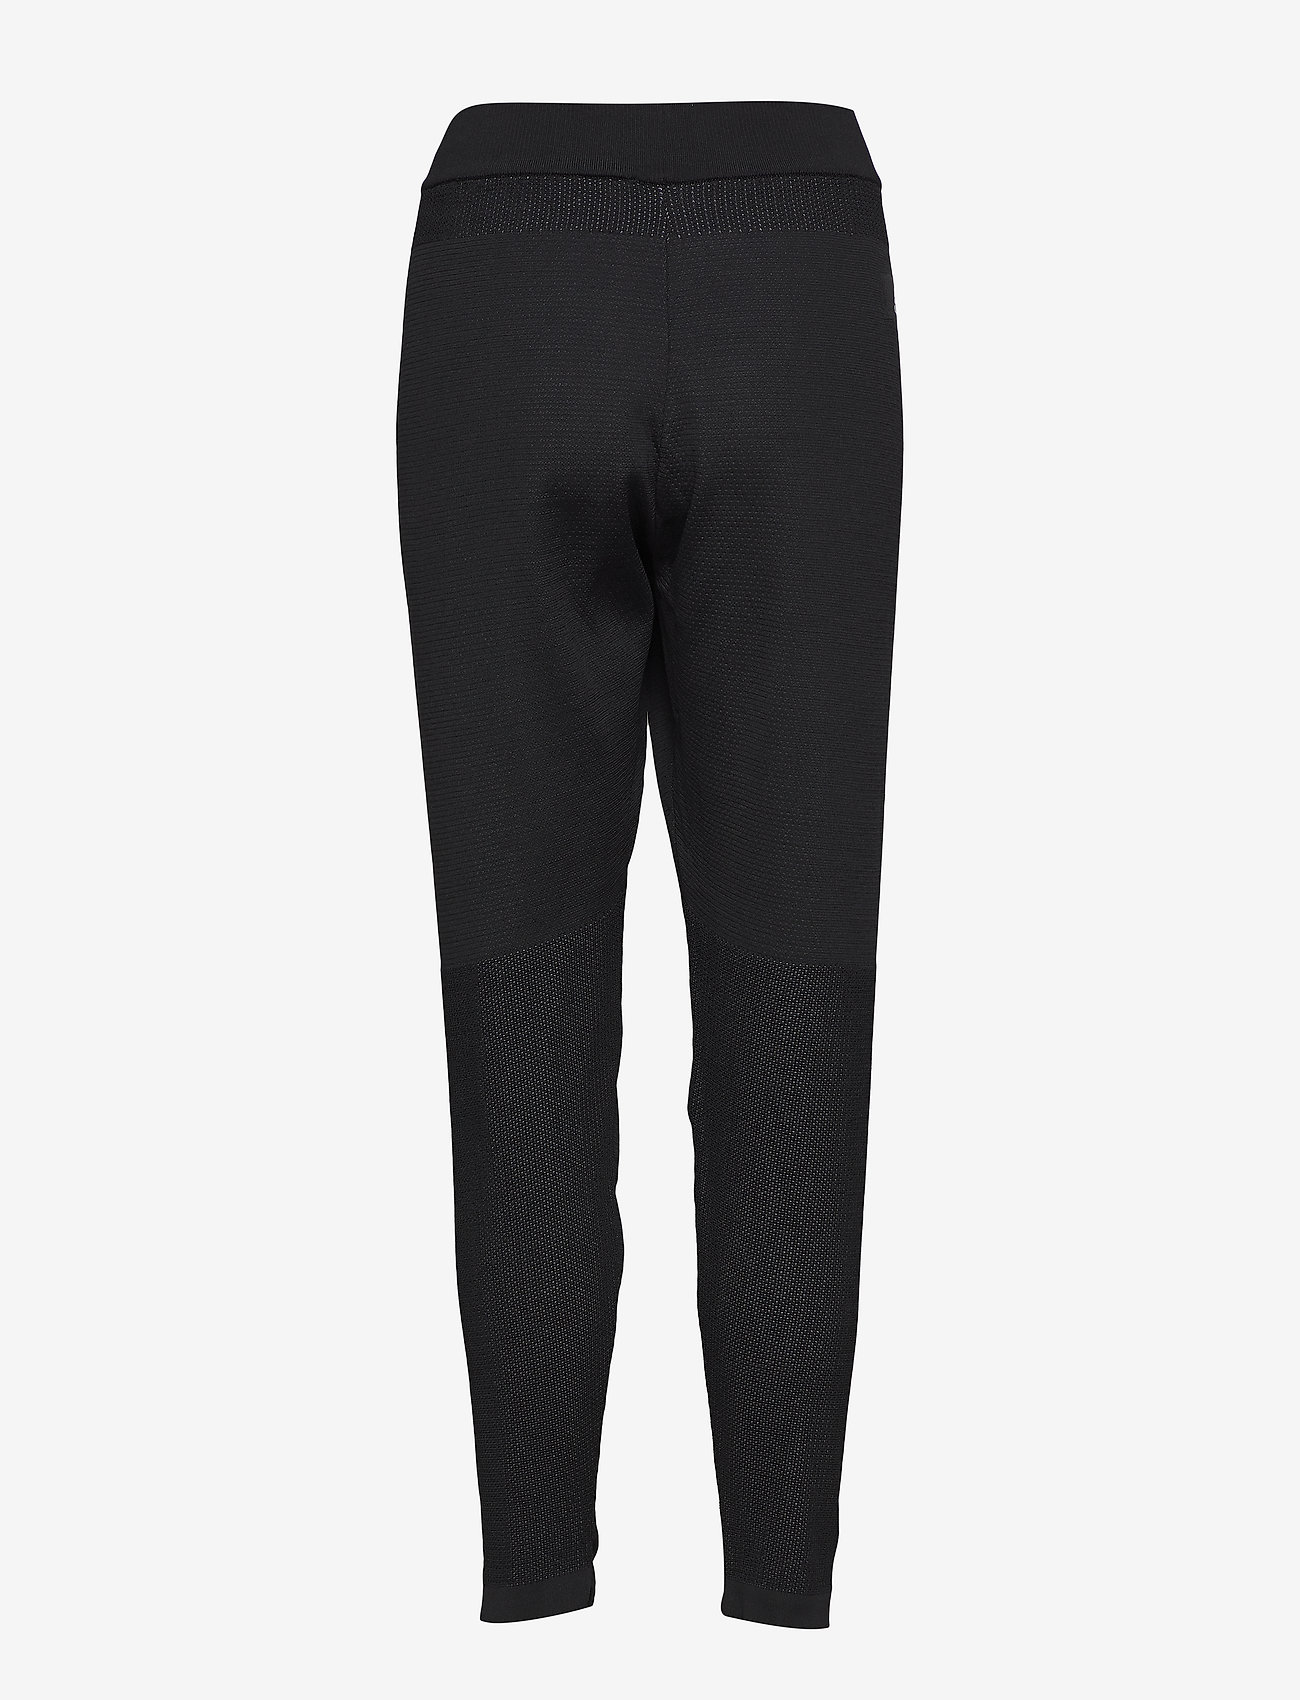 adidas Performance - W Id Kn Stk Pt - pants - black - 1